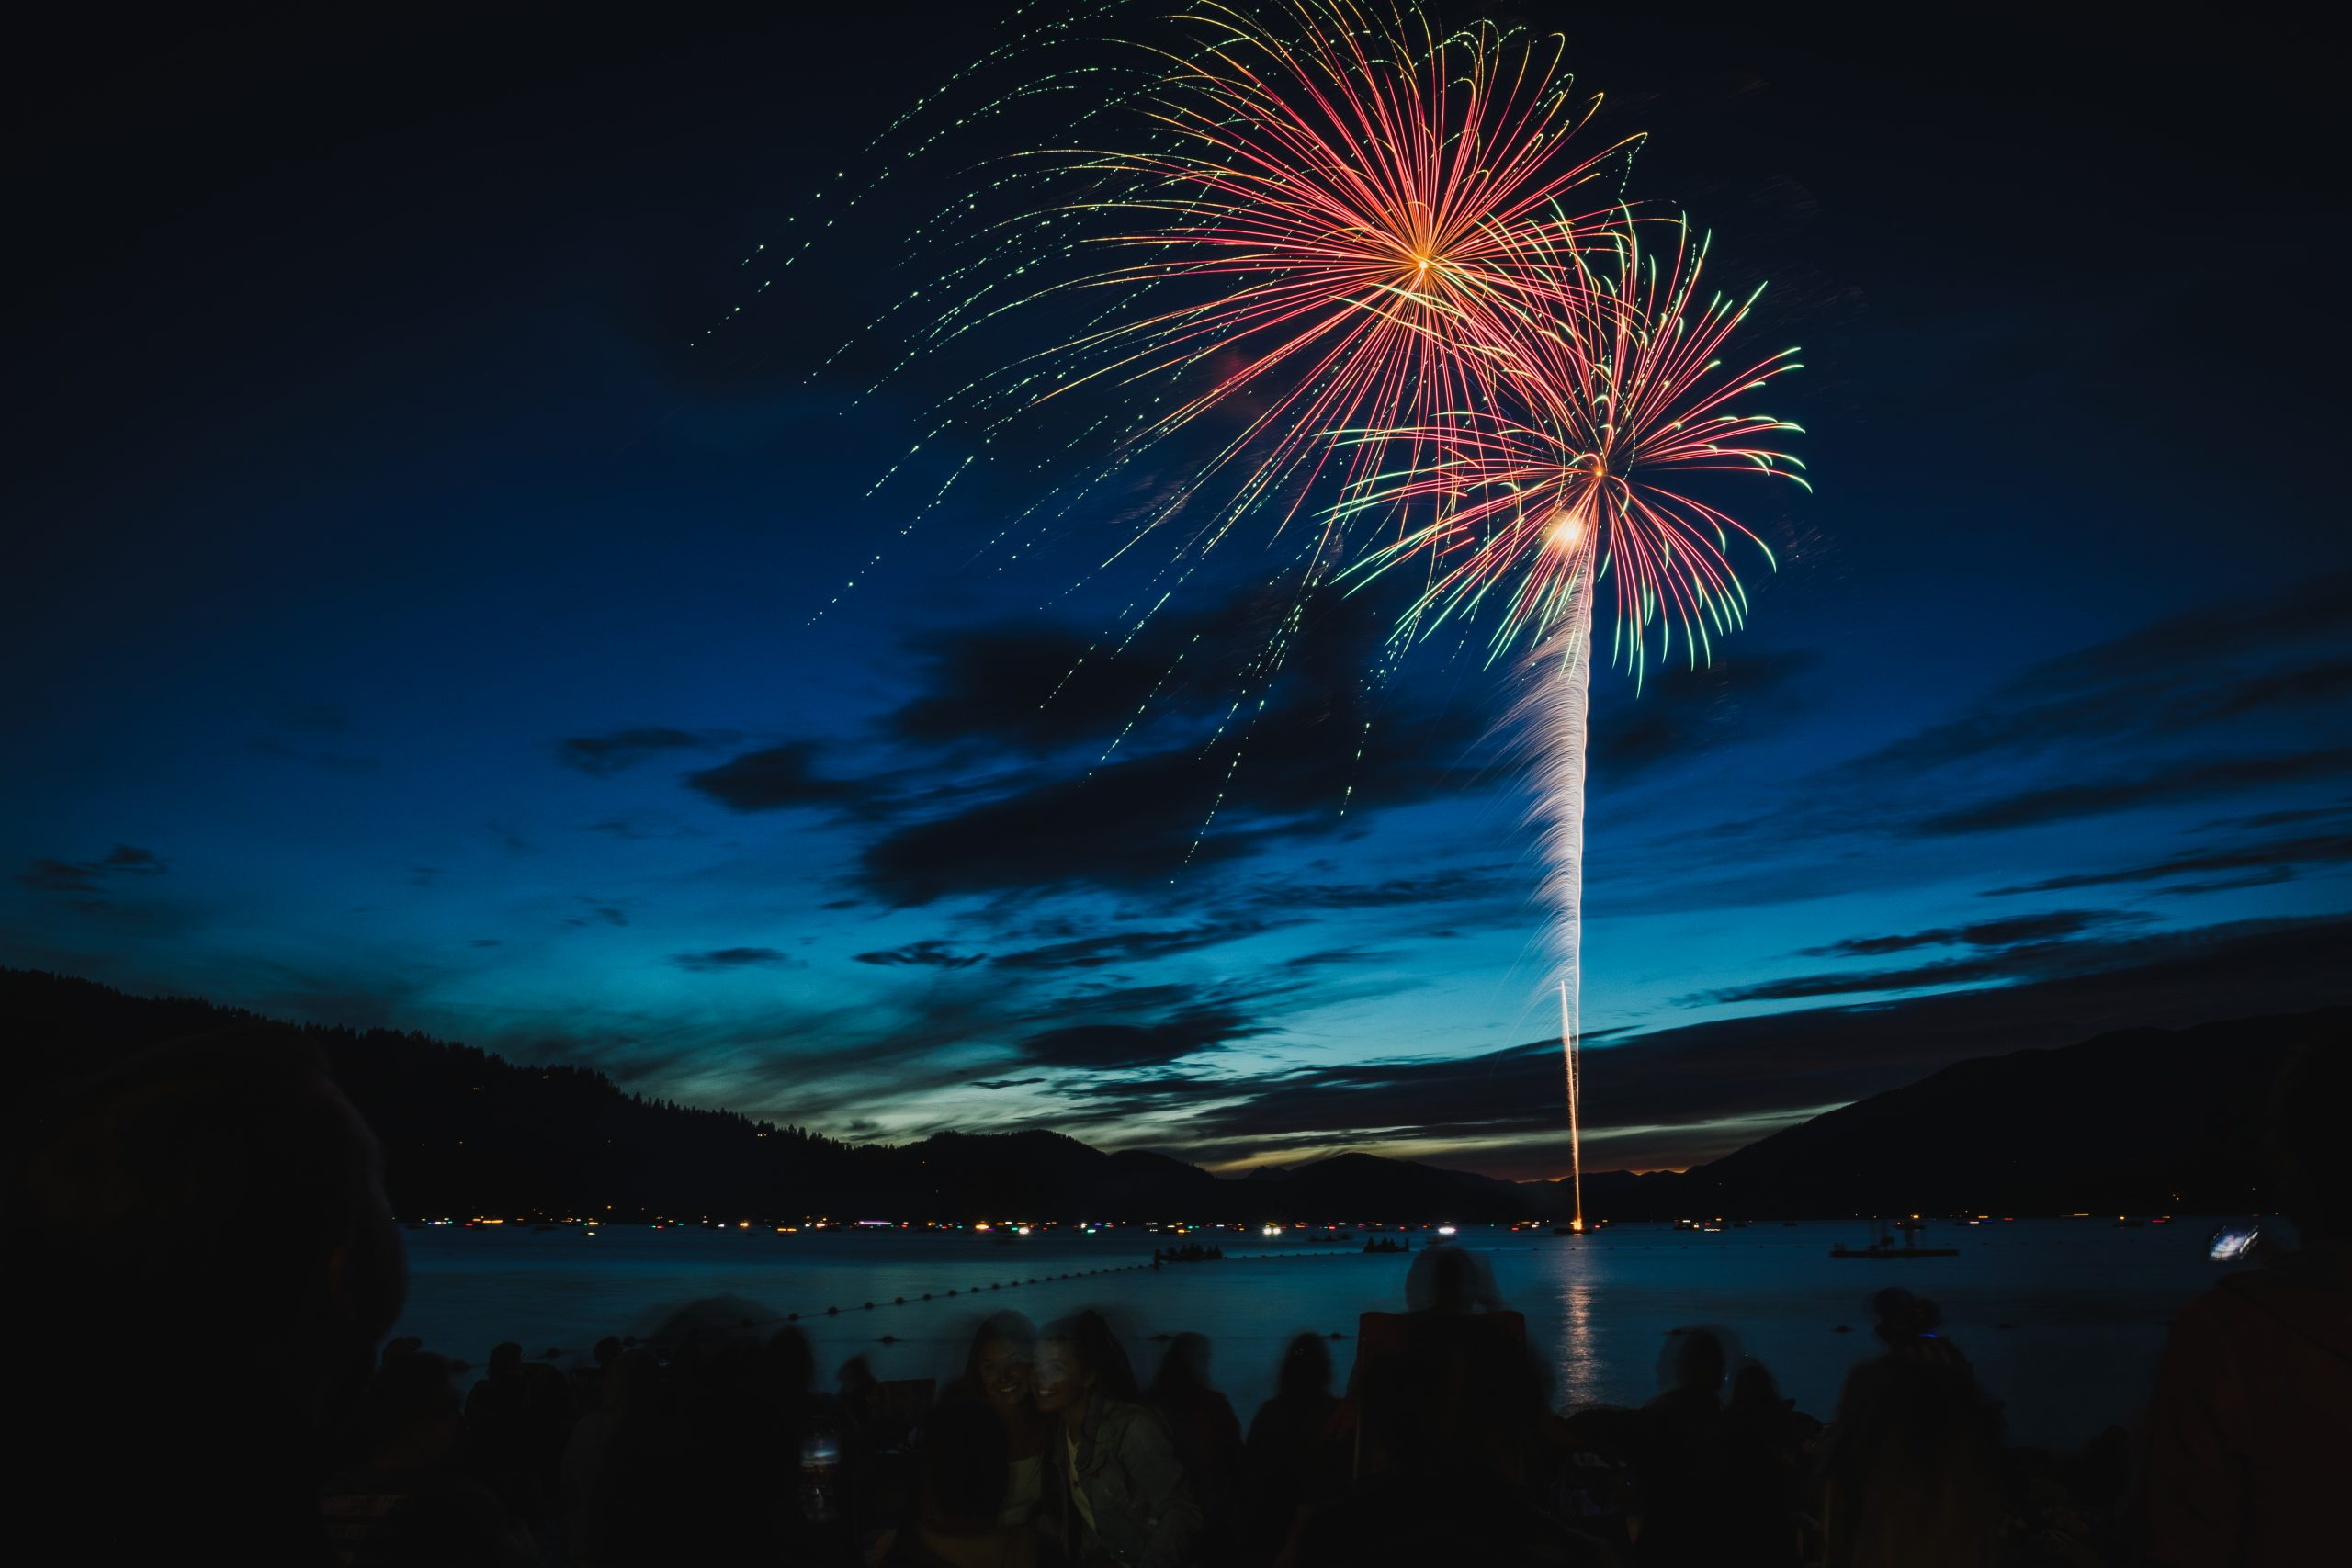 Fireworks explode in the sky above Whitefish Lake during the 4th of July celebrations in Whitefish, Montana.